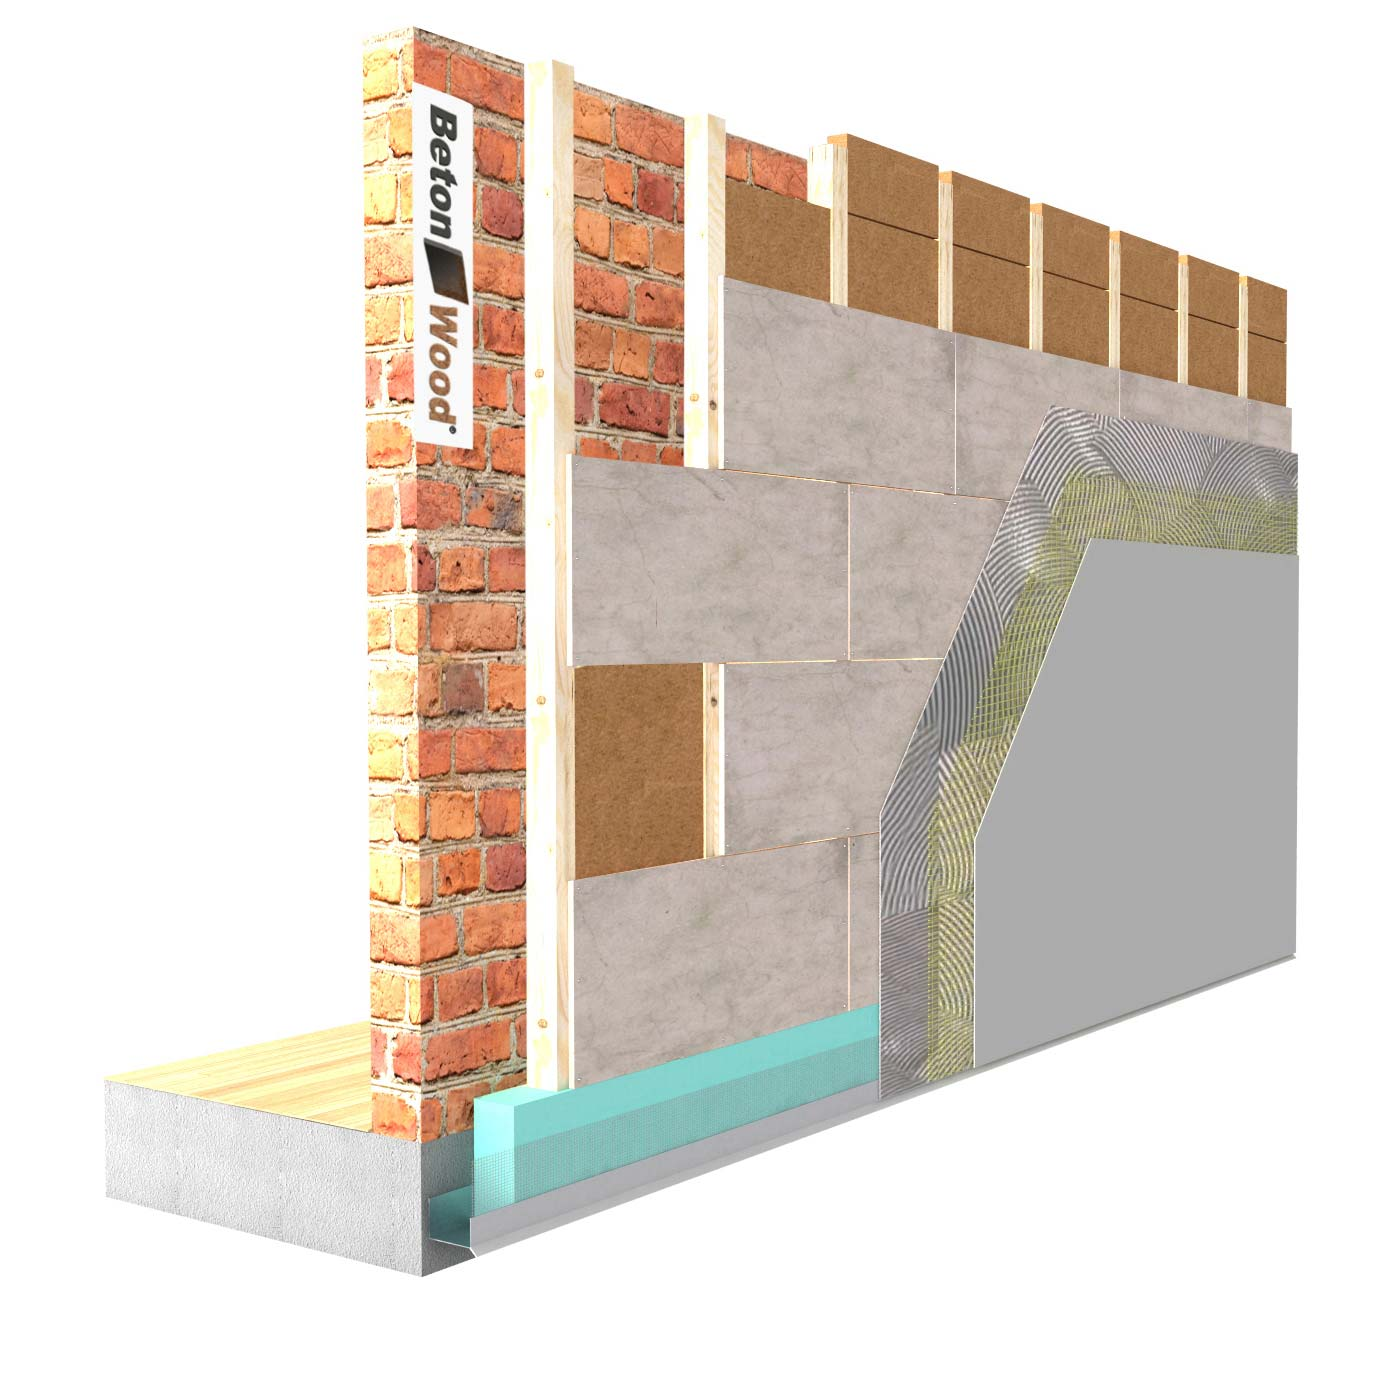 External insulation system with Protect wood fiber on masonry